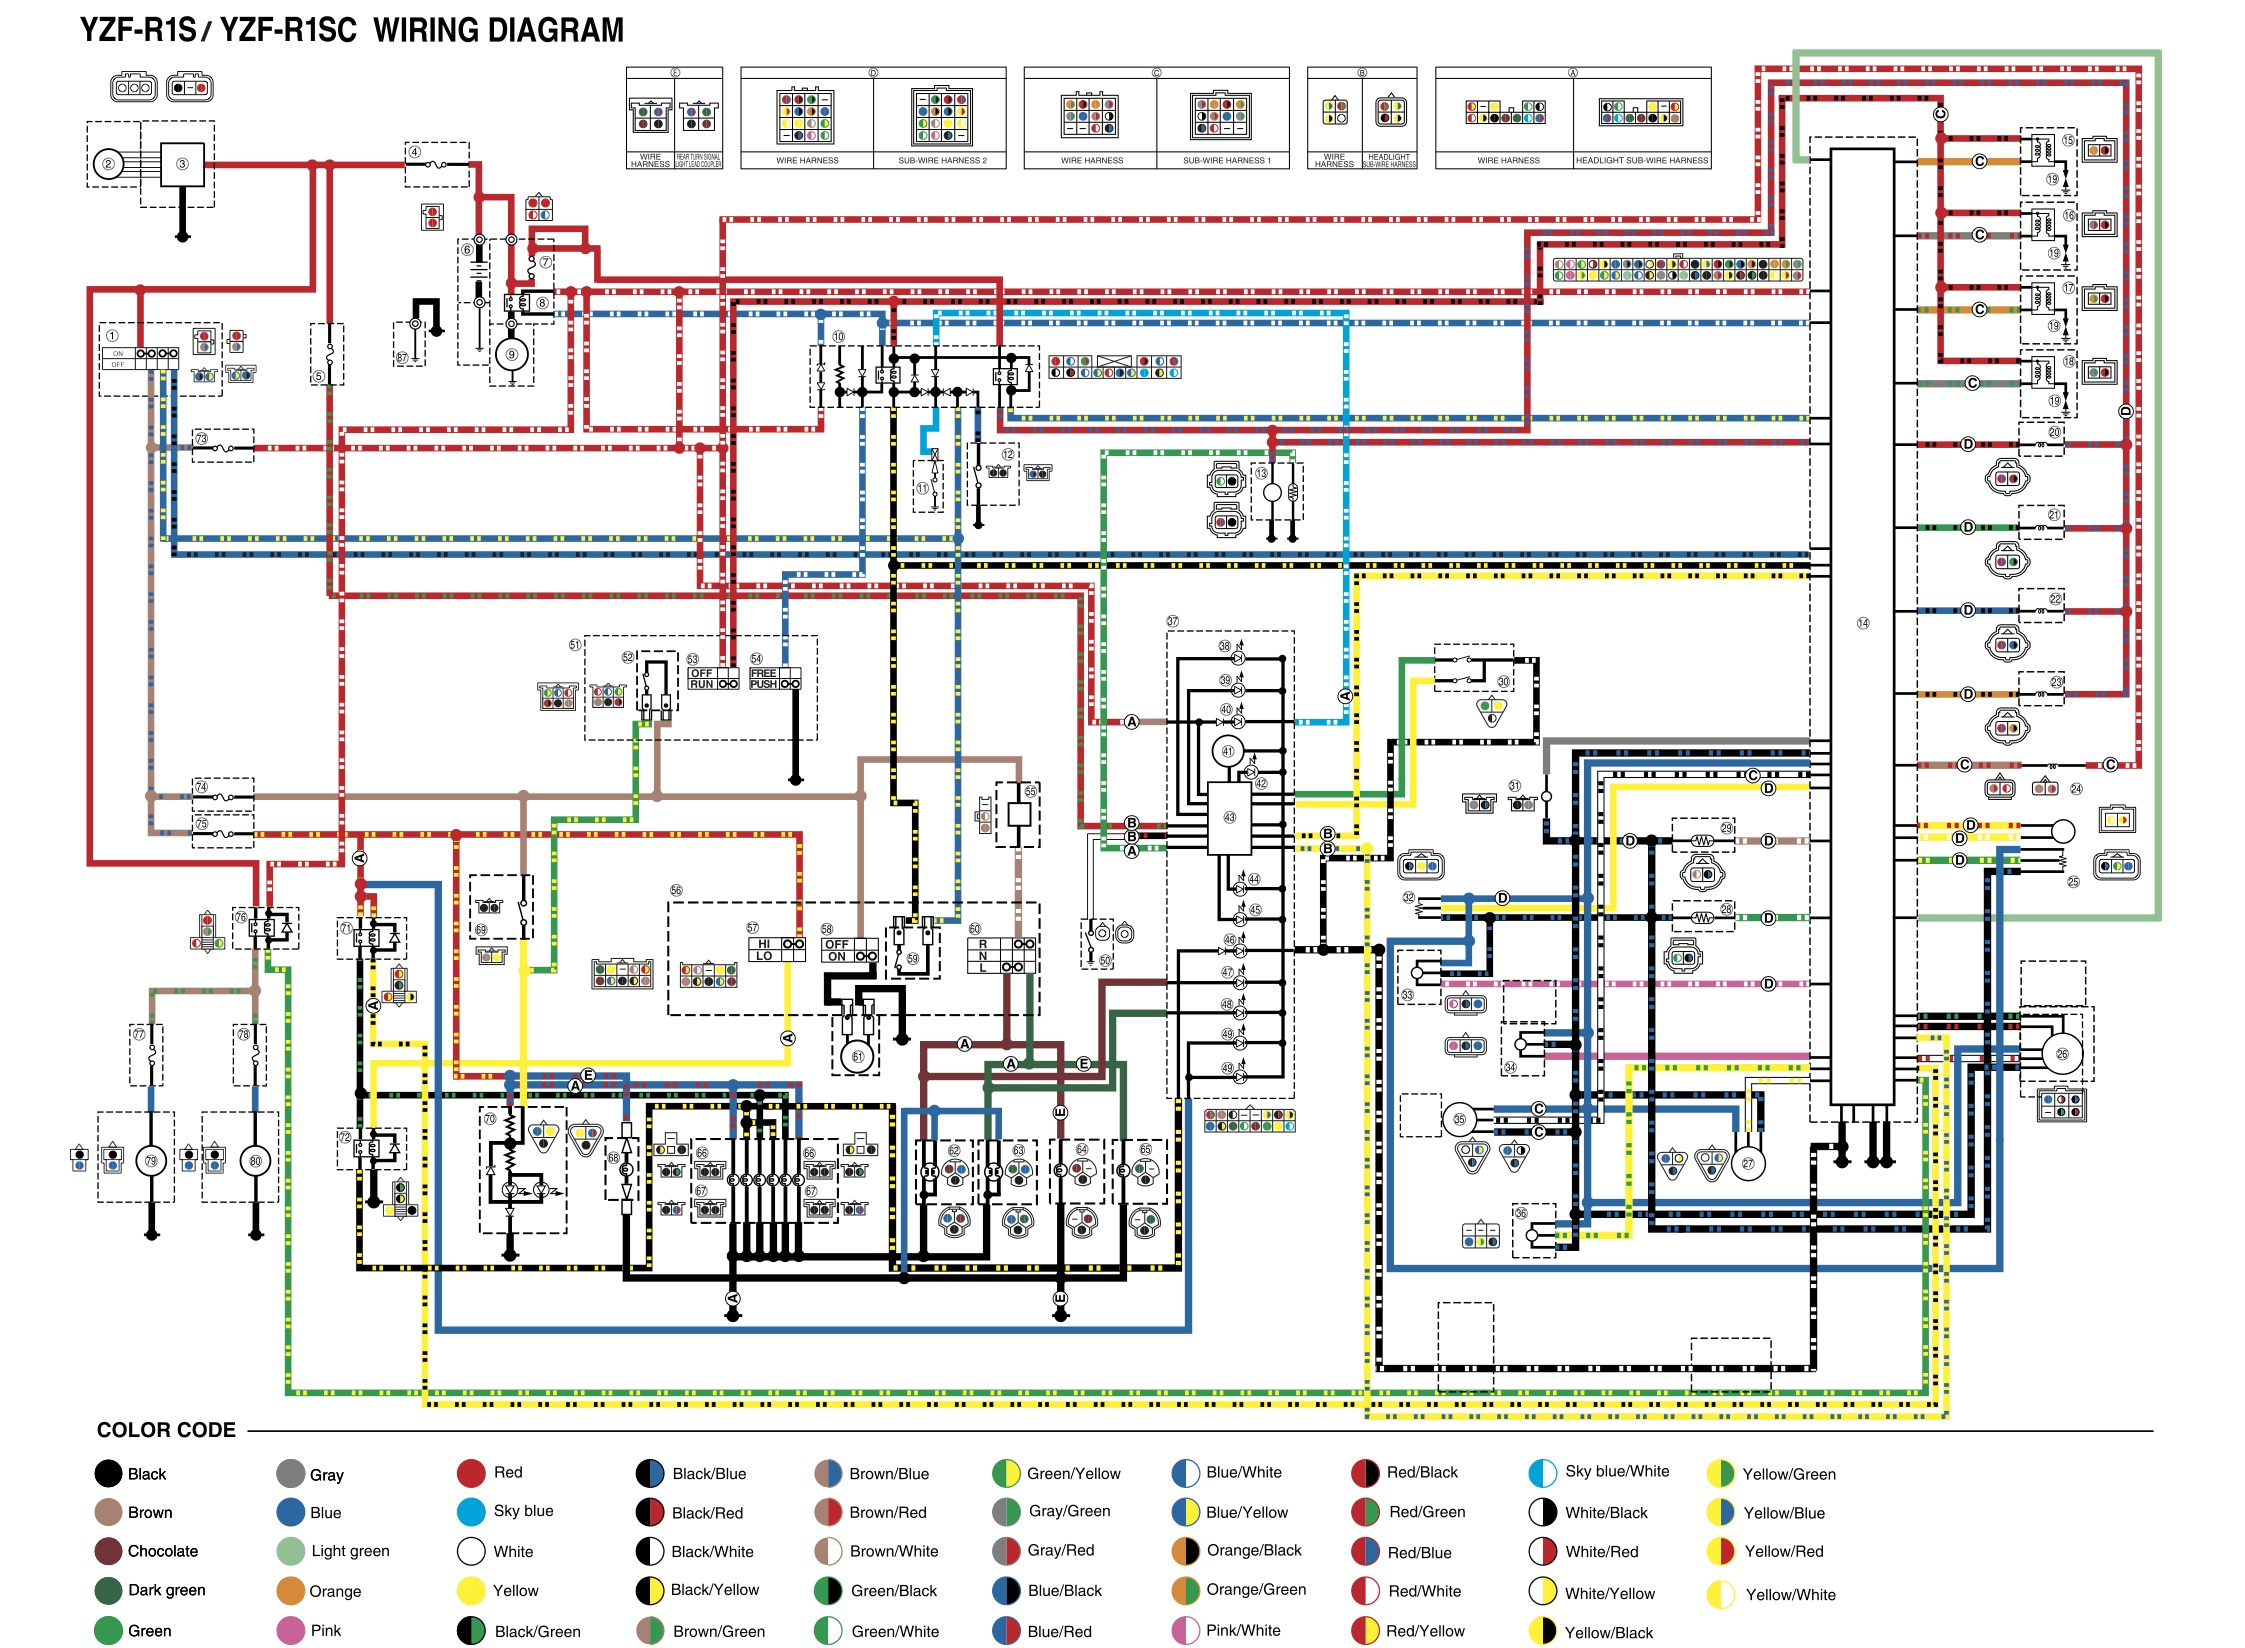 04R1_wiring_diagram r1 wiring help 2008 yamaha r1 wiring diagram at cos-gaming.co